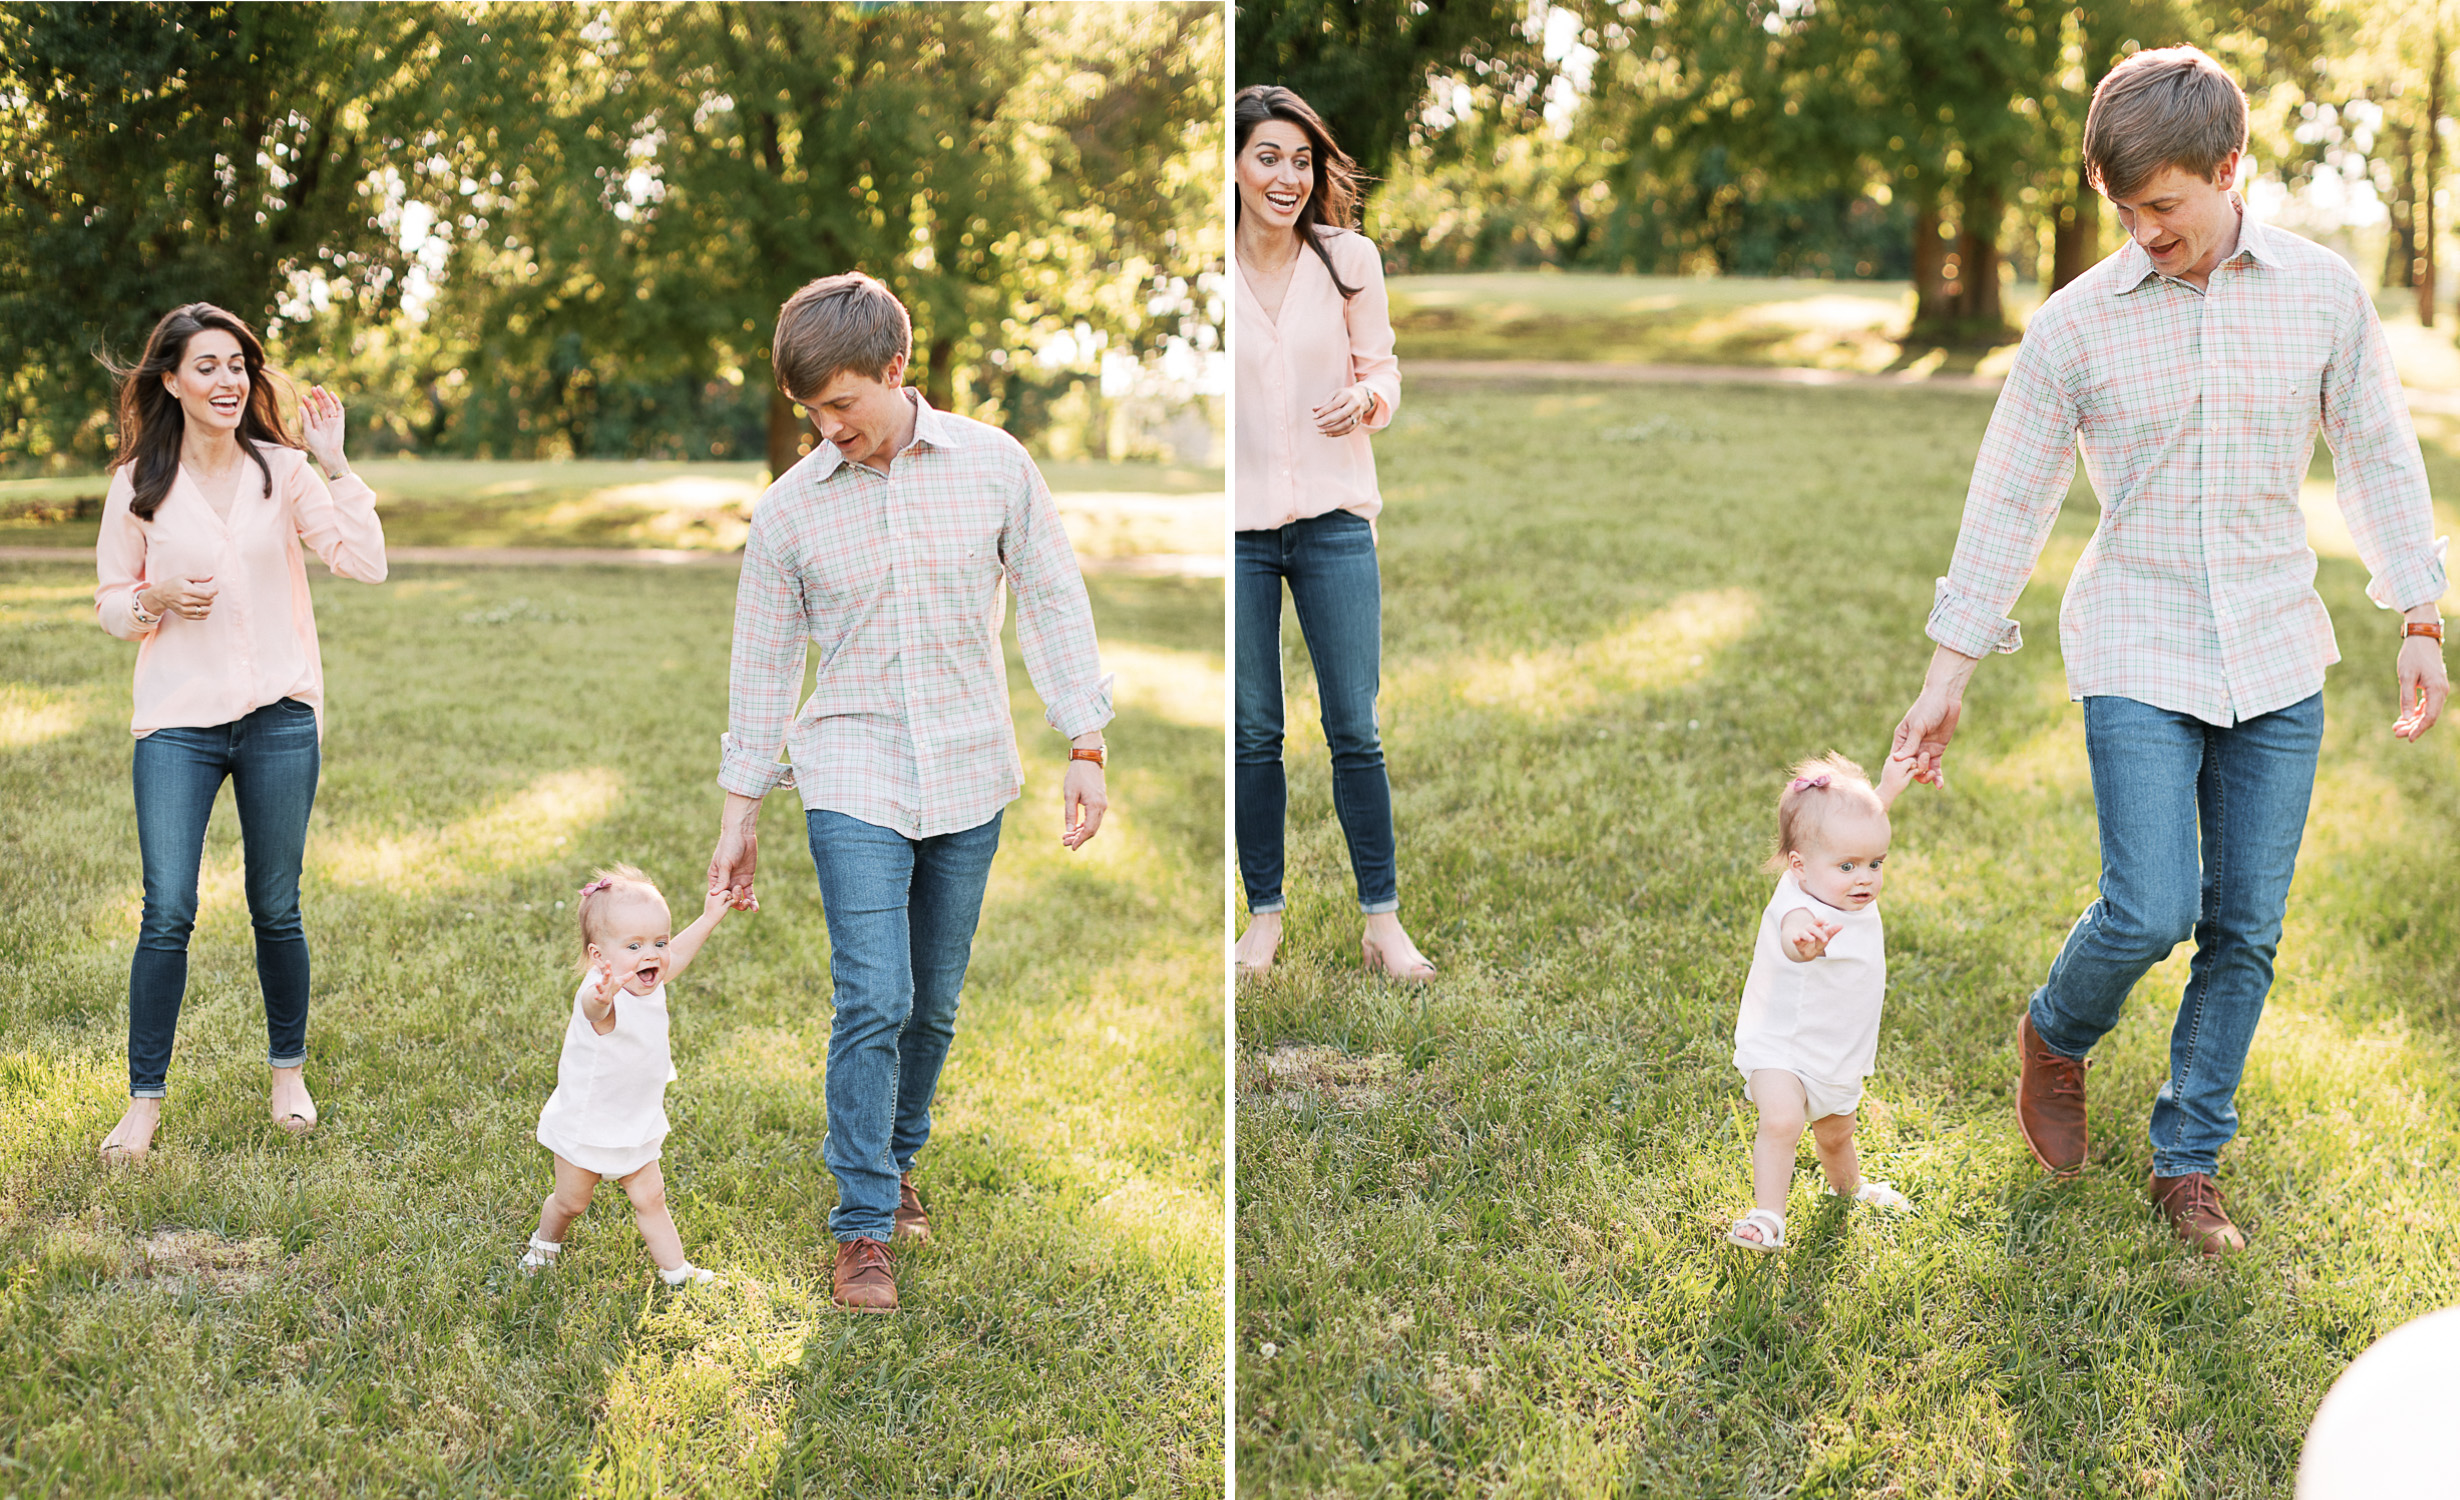 Jackson Madison MS Newborn Family Photographer 2.jpg